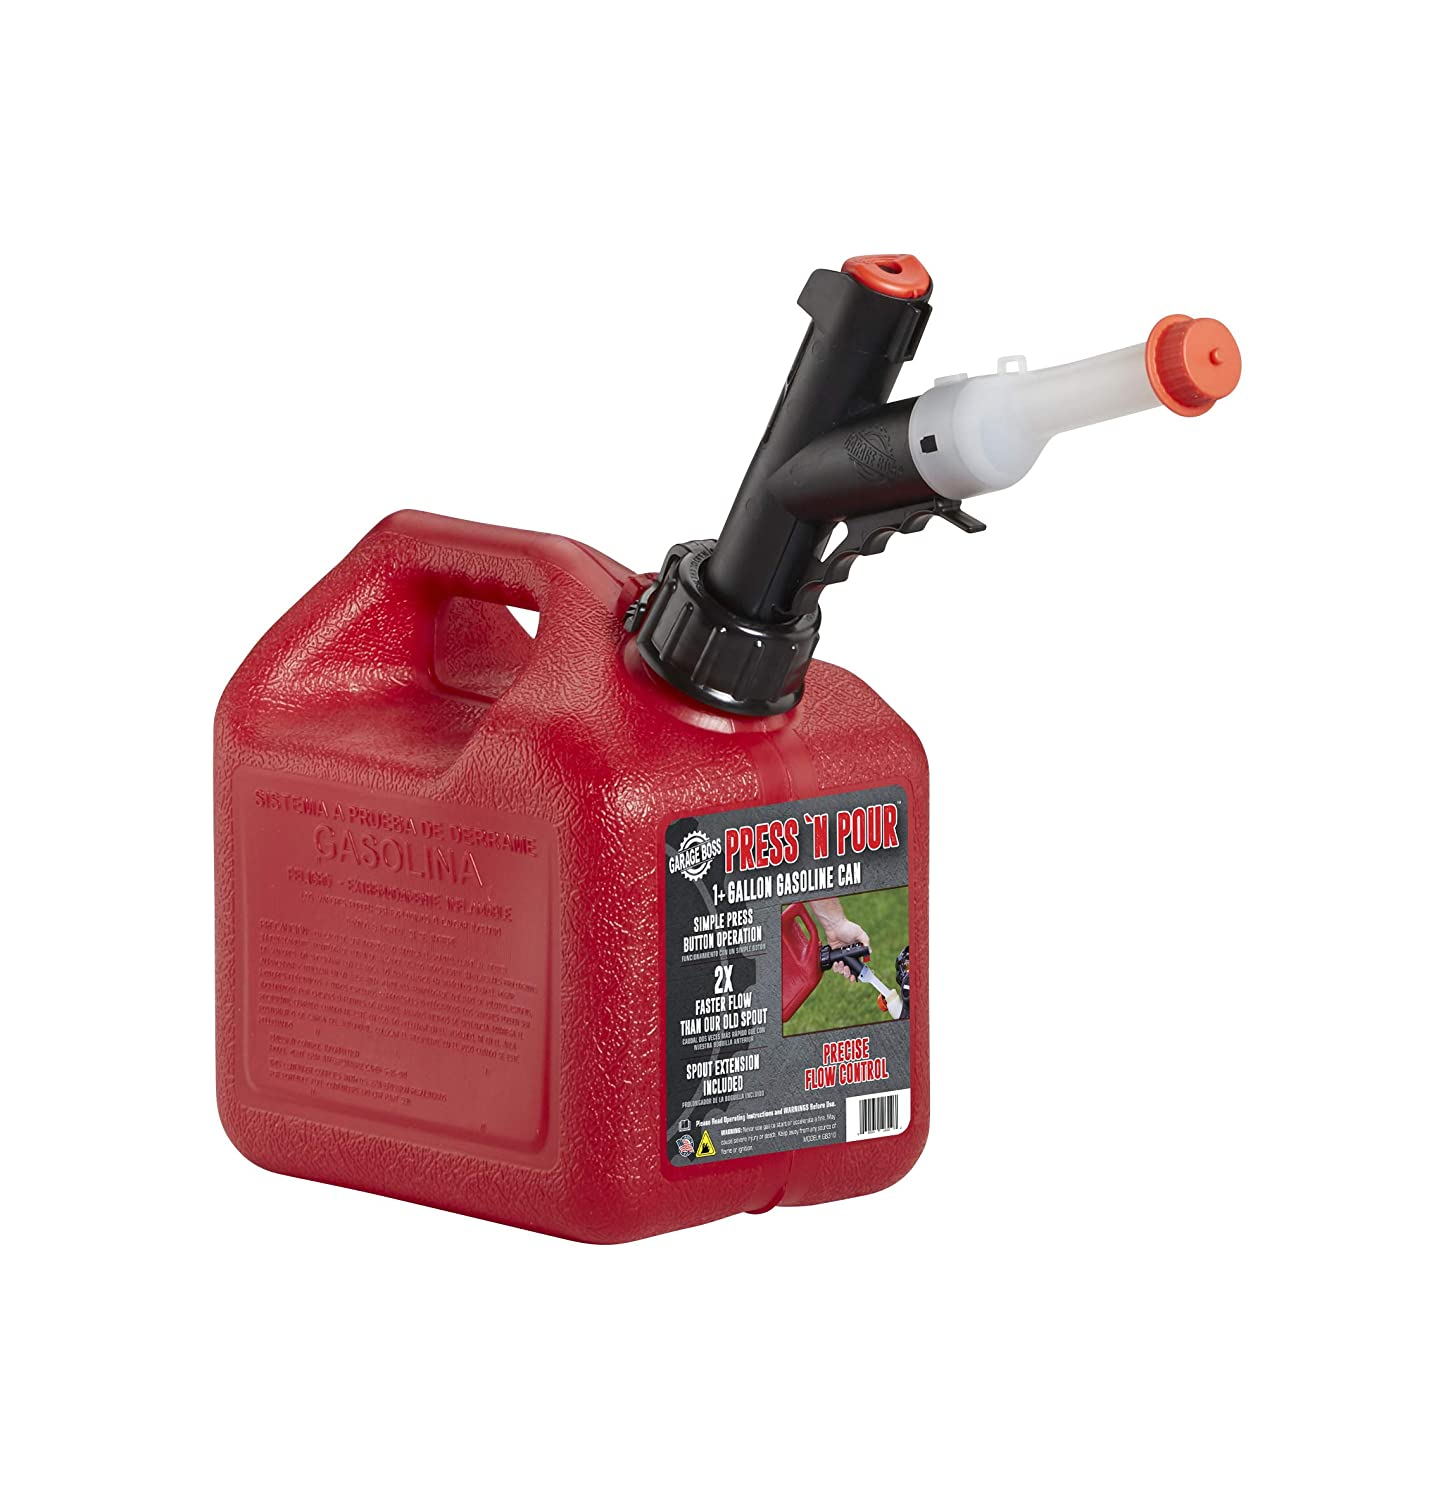 GARAGE BOSS GB310 Briggs and Stratton Press 'N Pour Gas Can, 1+ Gallon, Red